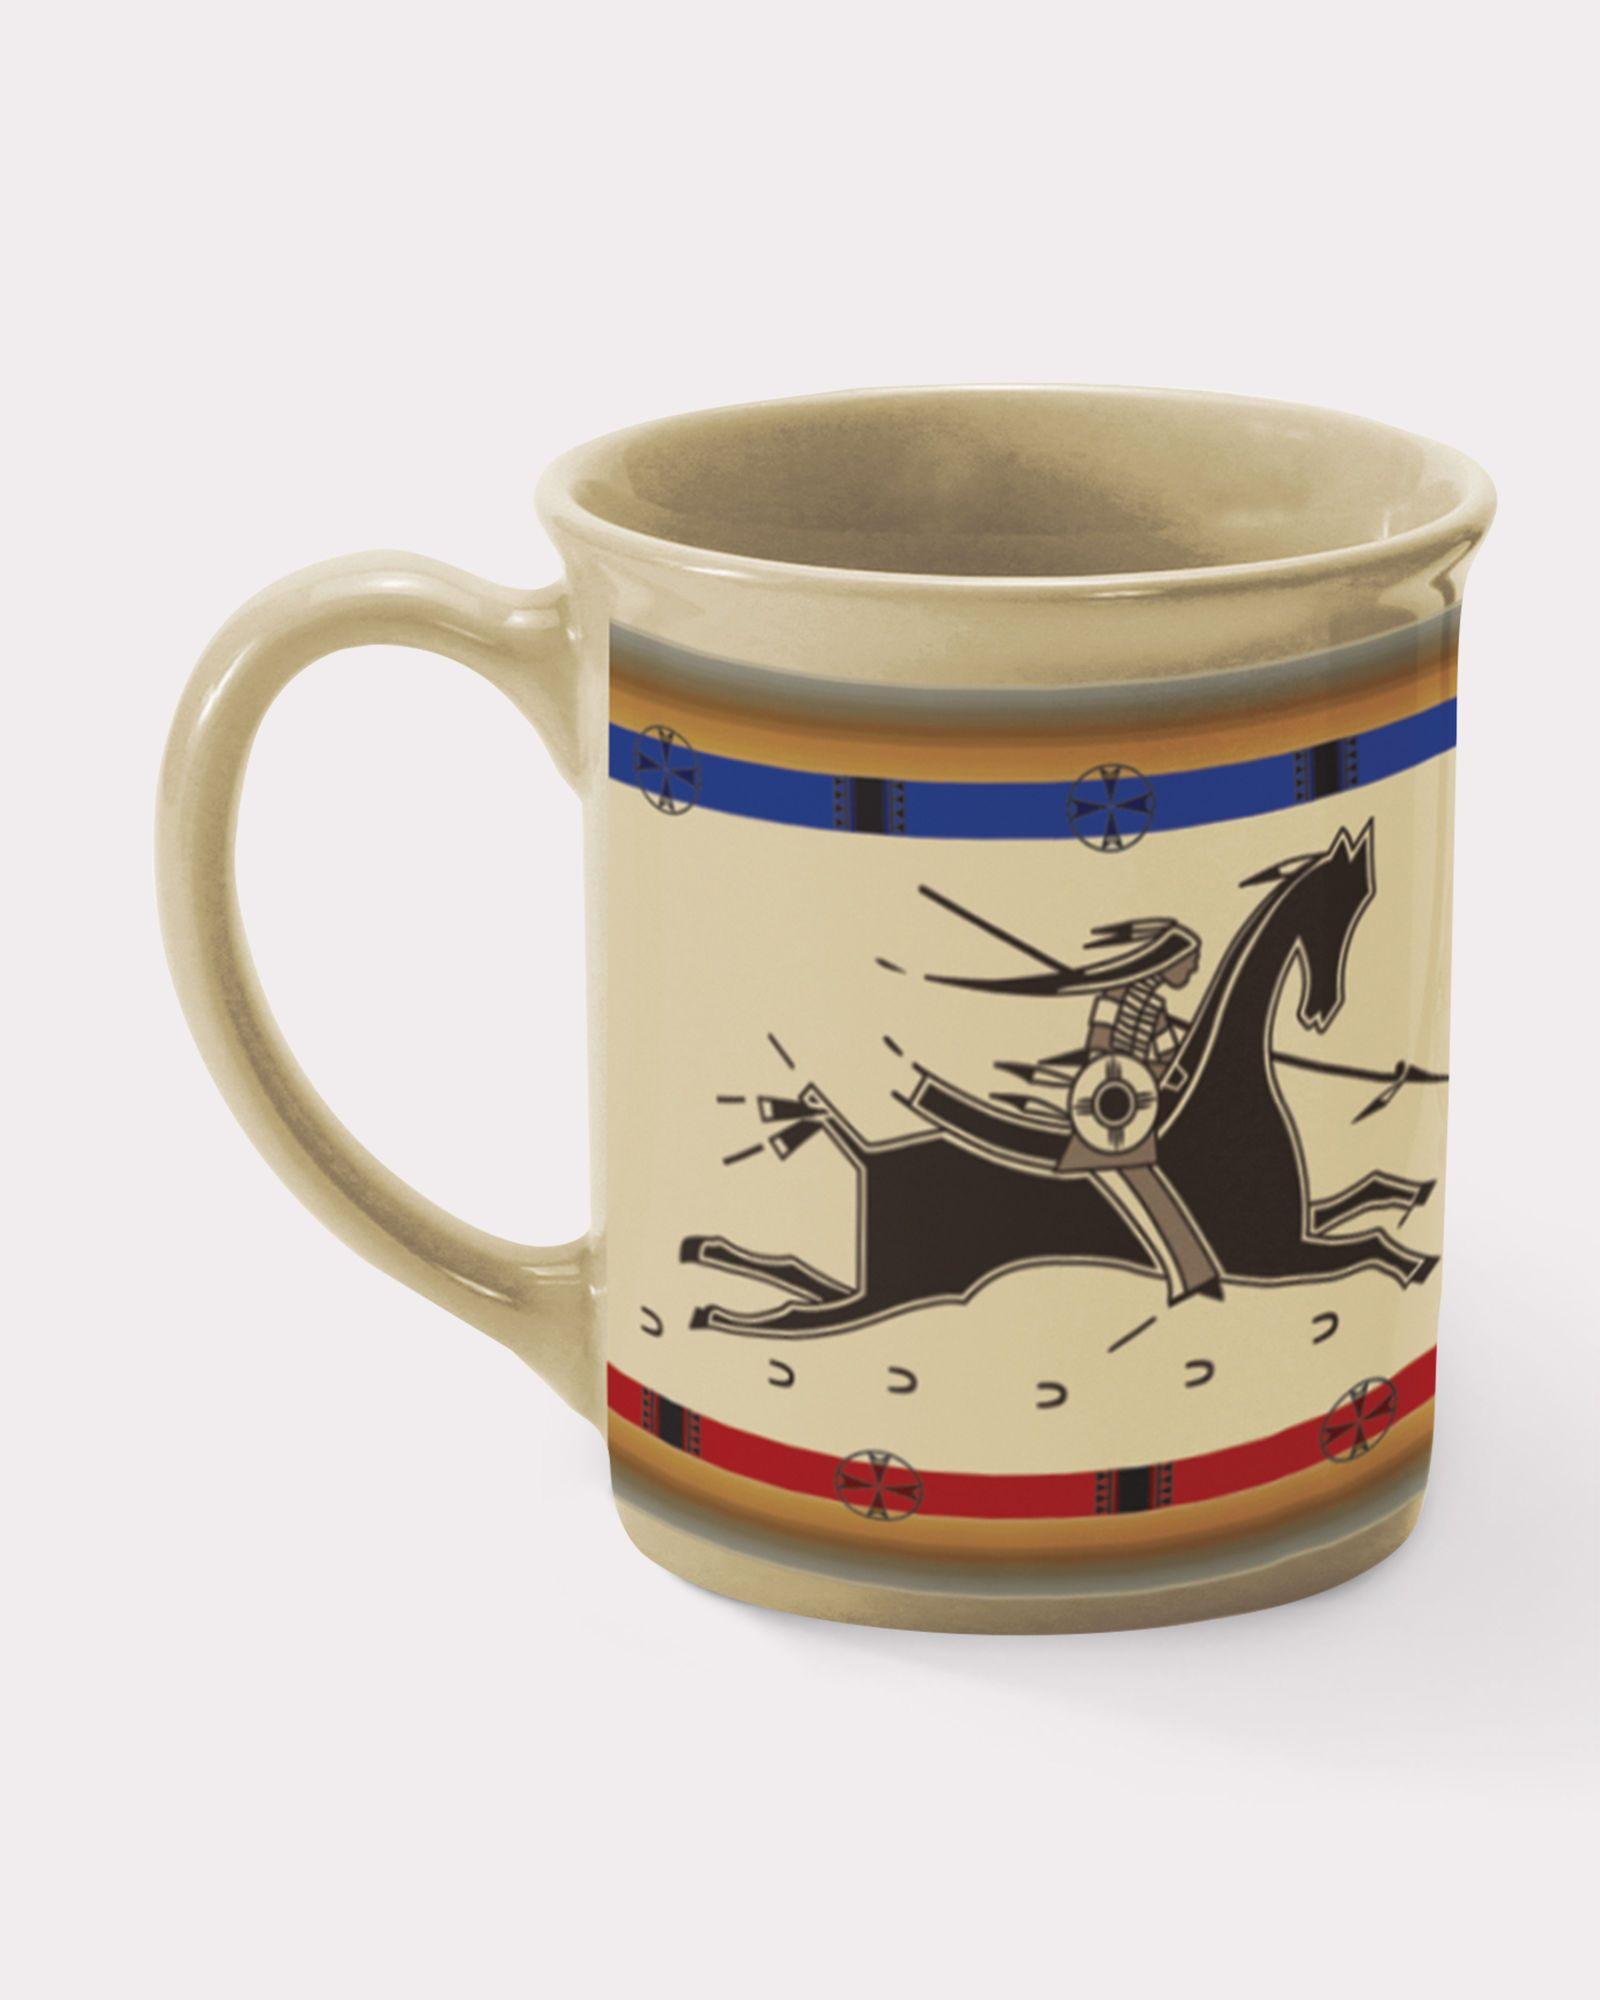 Legendary coffee mug (With images) Mugs, Coffee mugs